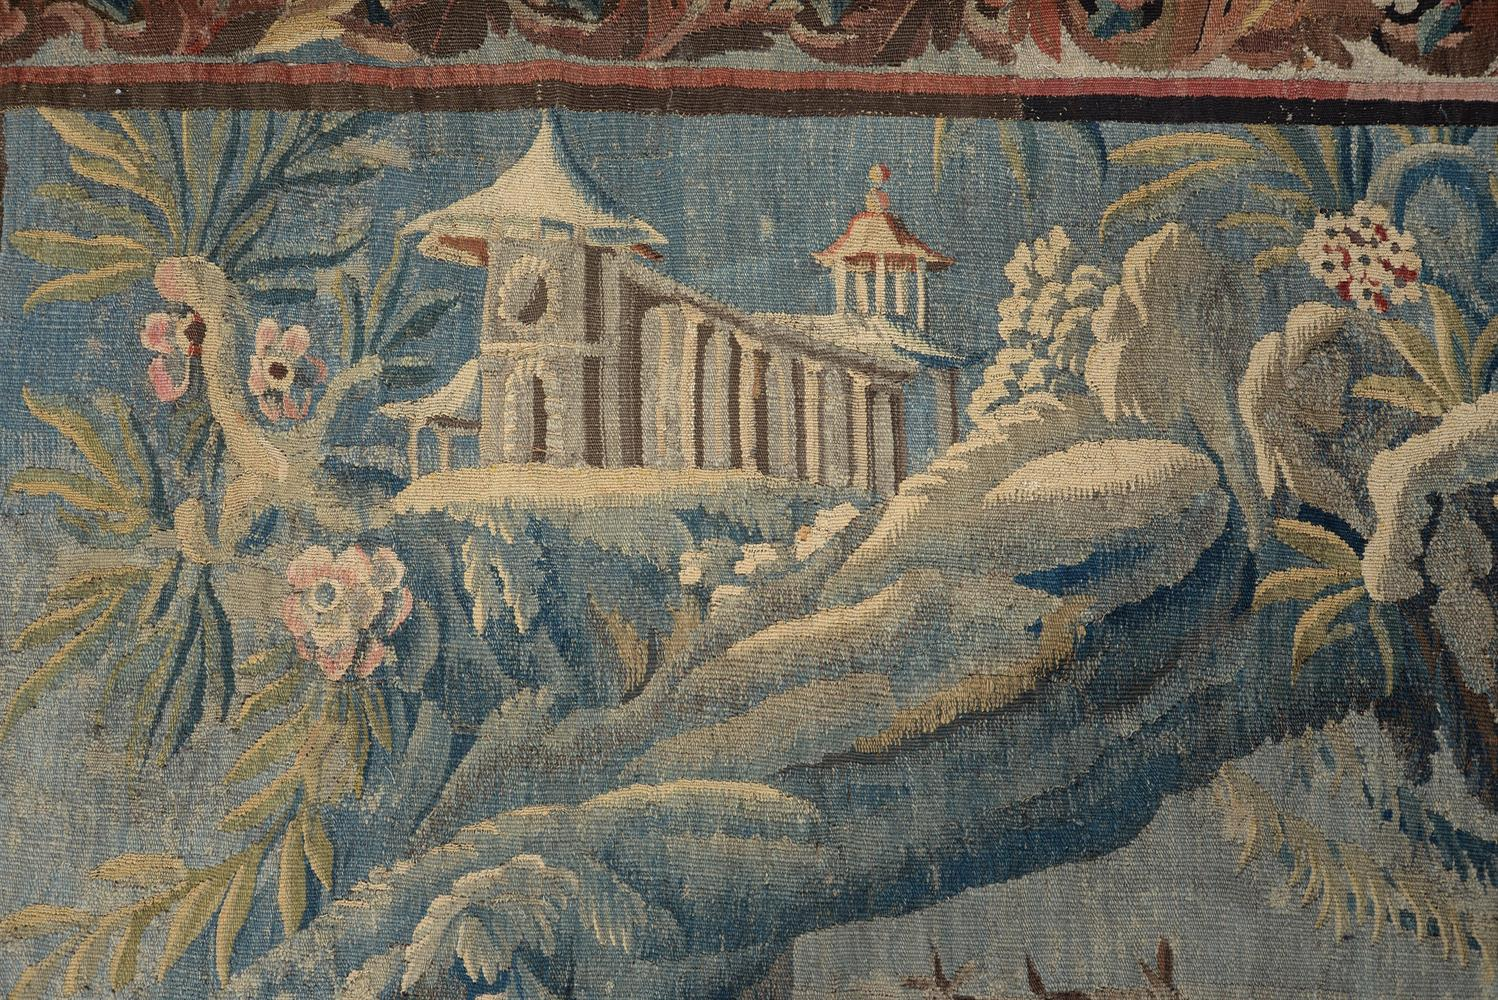 A FRENCH EXOTIC CHINOISERIE LANDSCAPE TAPESTRY, MID-18TH CENTURY - Image 2 of 6